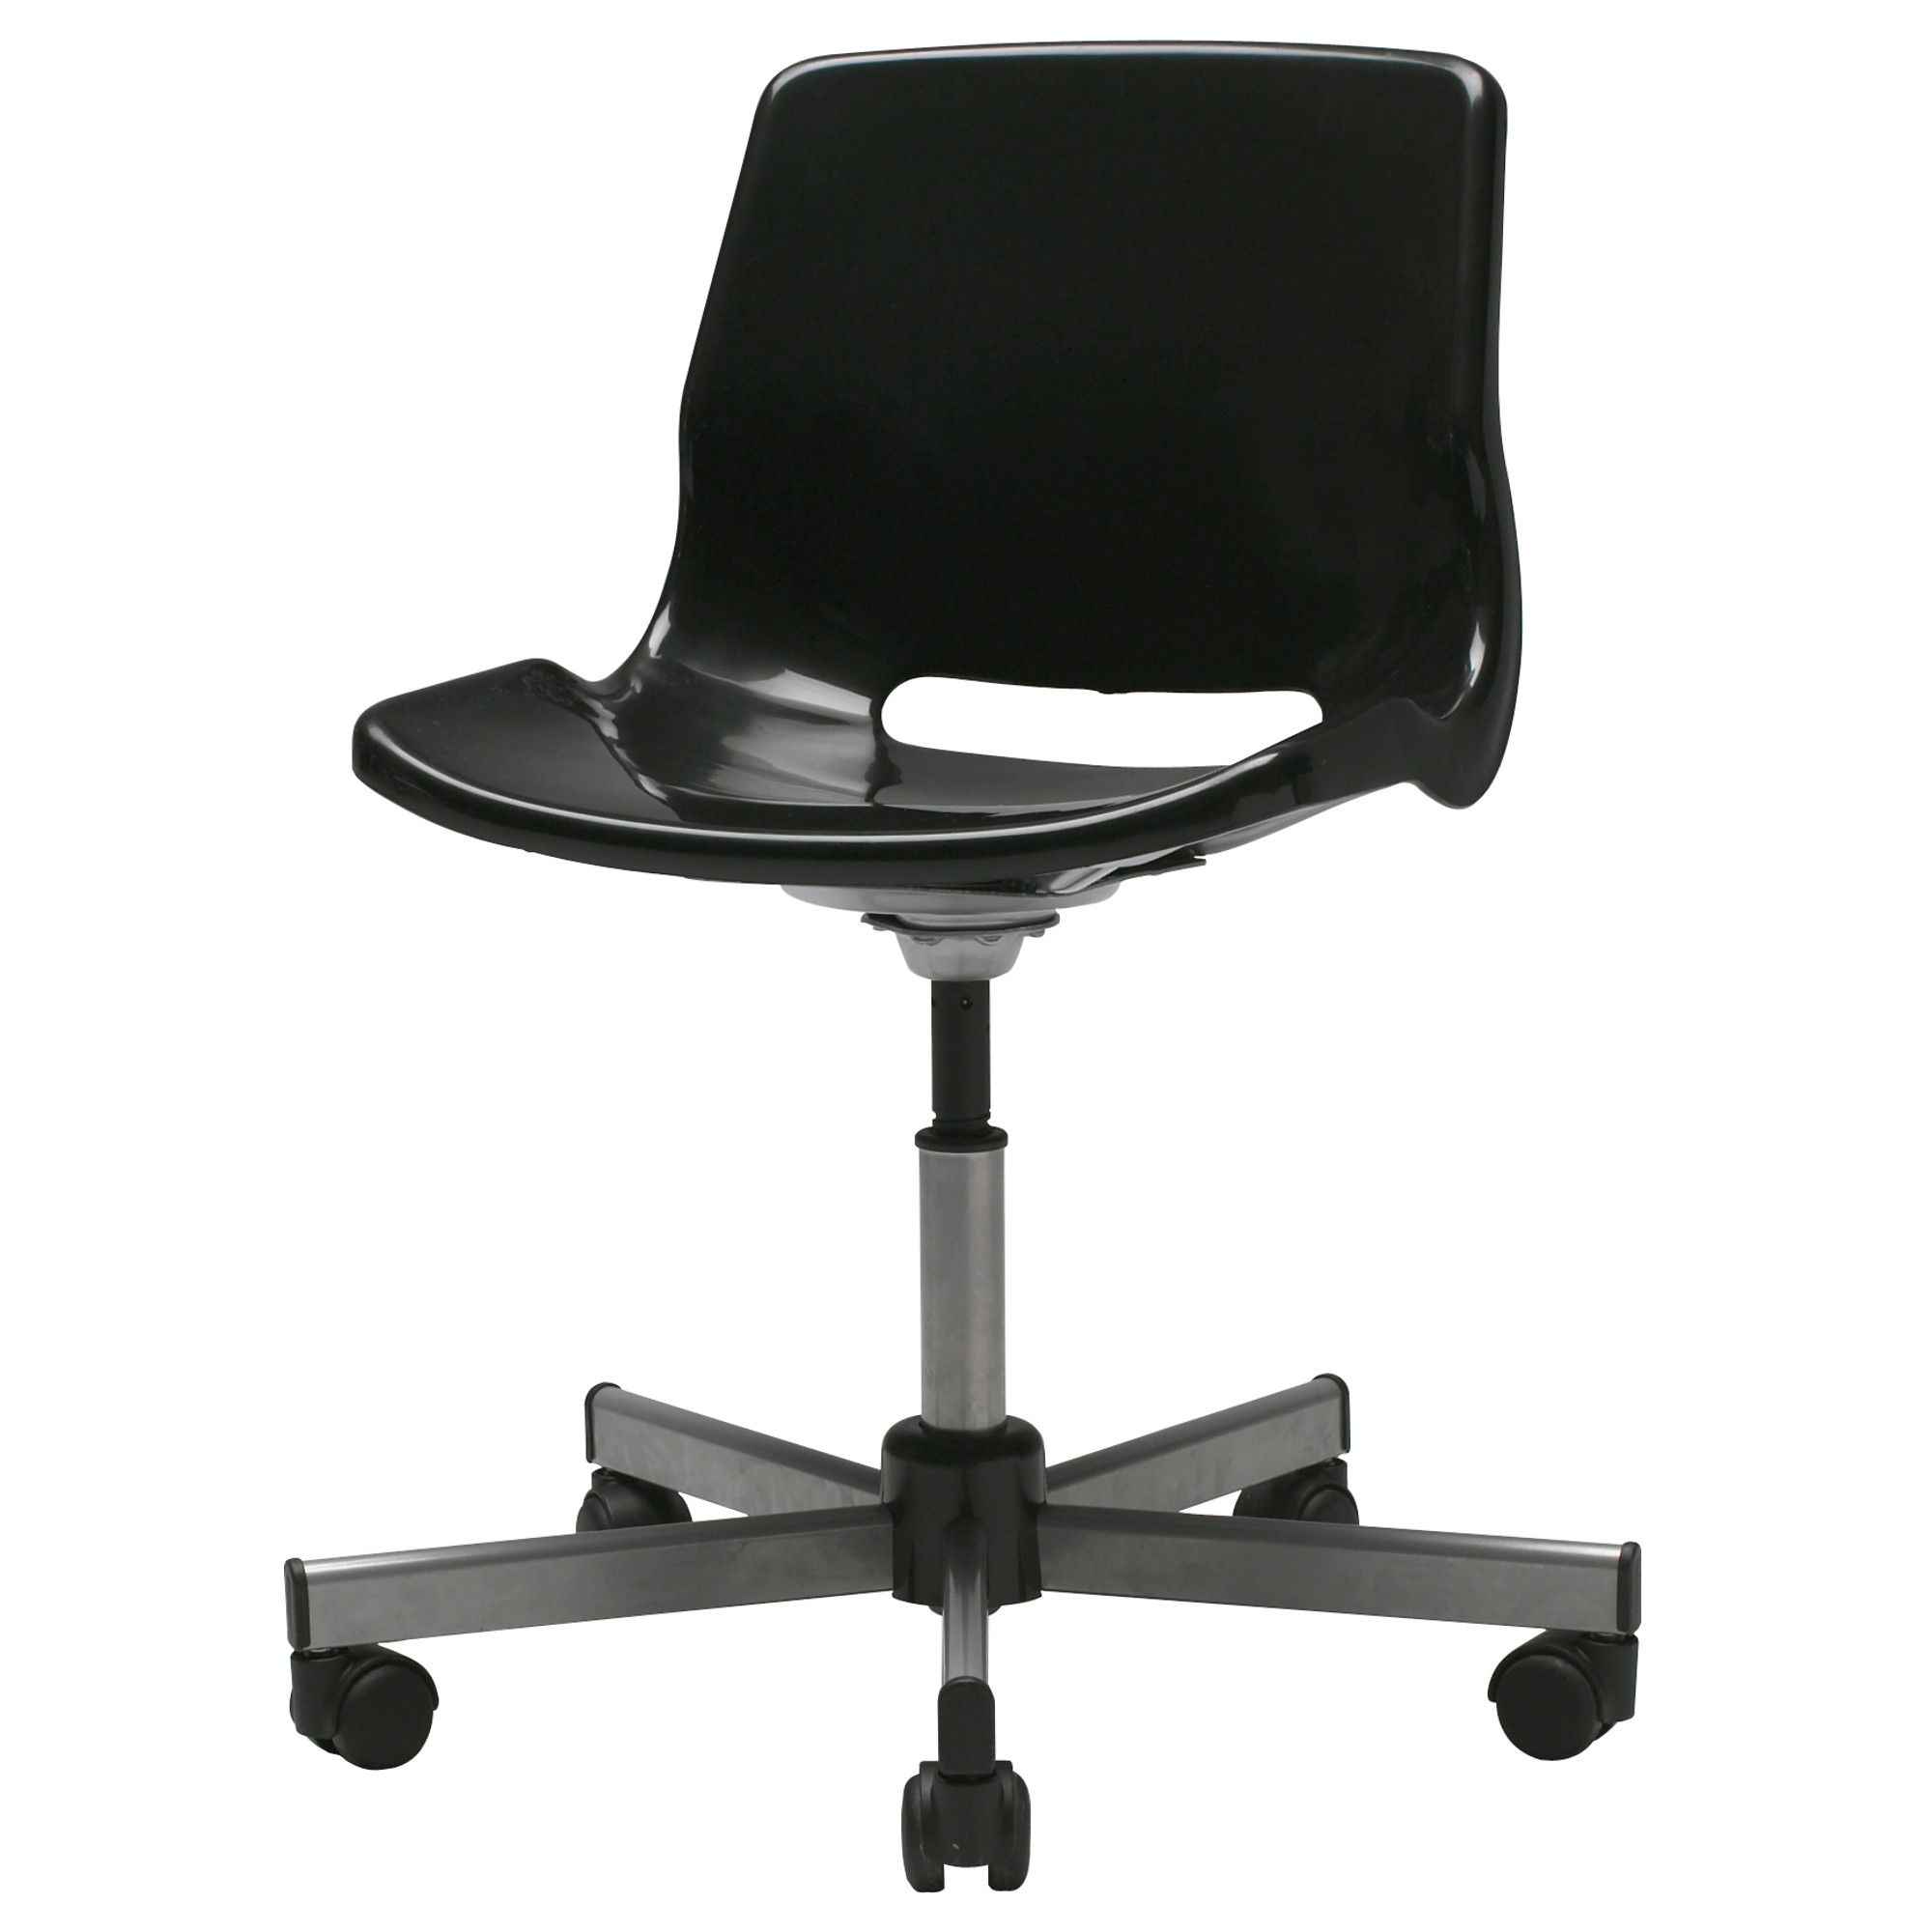 SNILLE Swivel chair black IKEA craft room I want